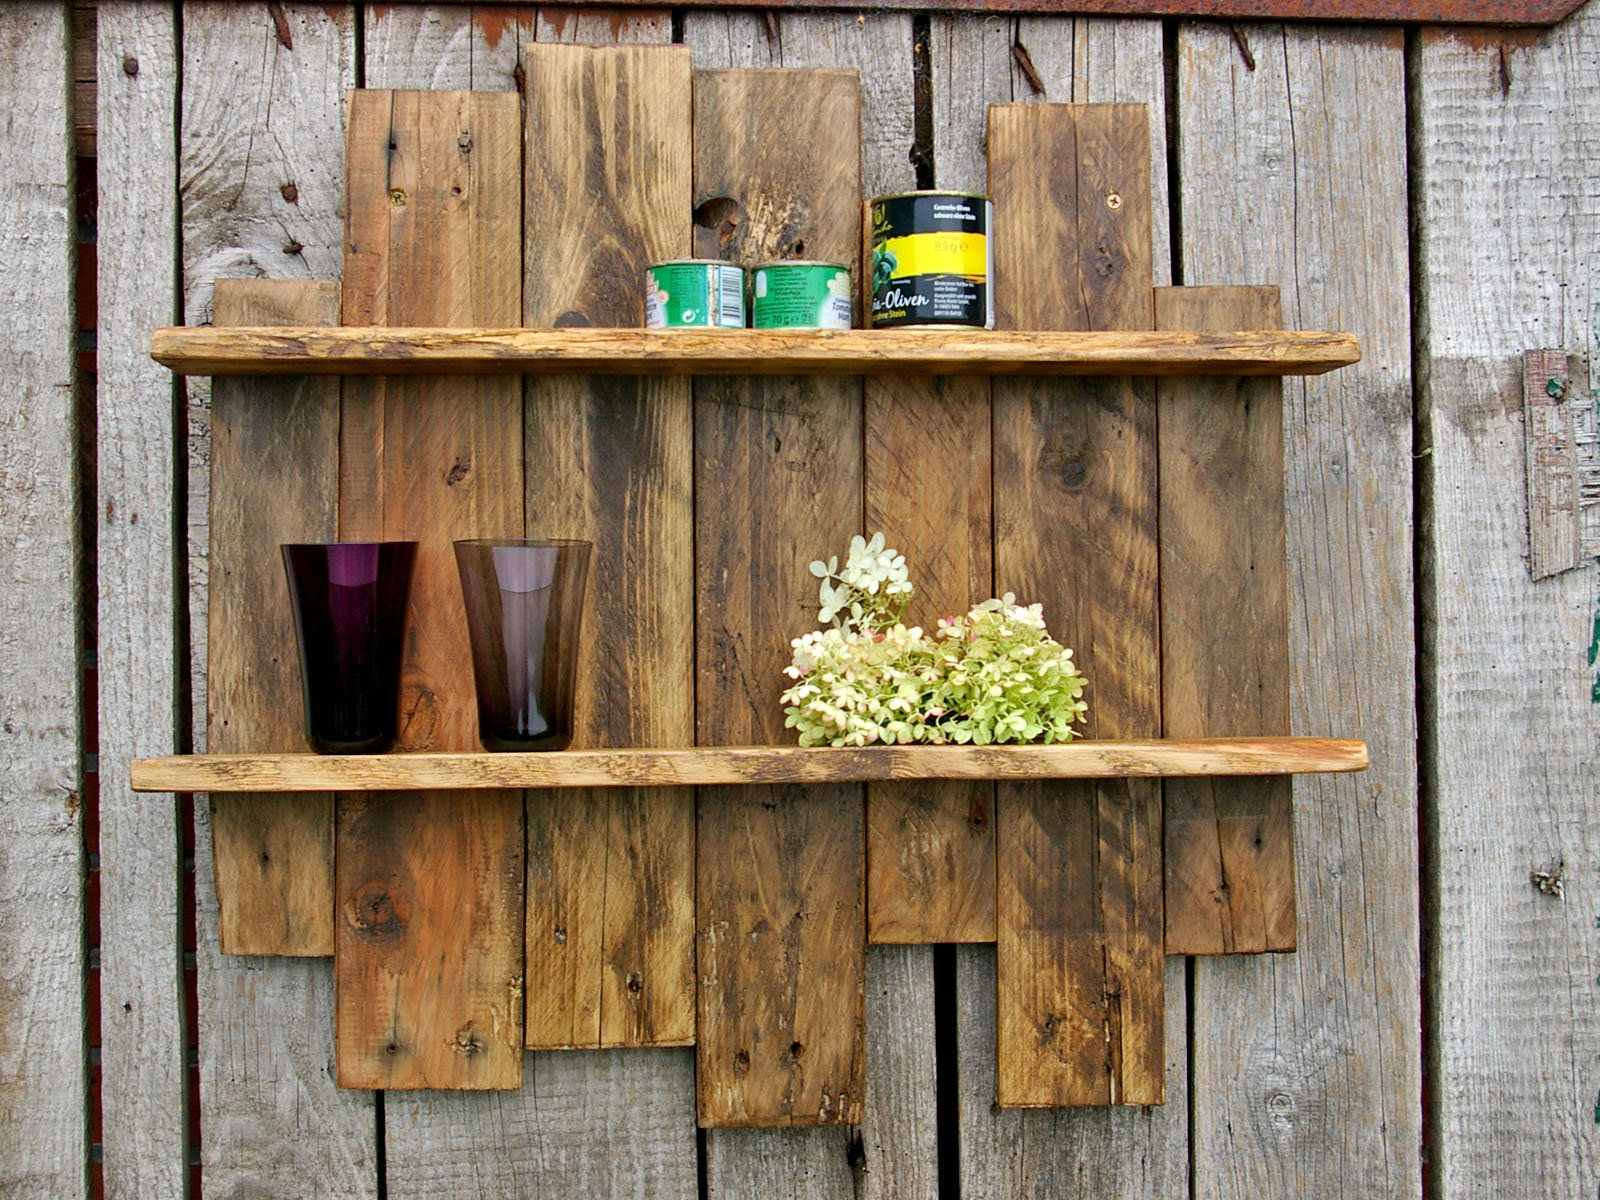 Garten Holz Regal Shelf Of Pallet Timber Wood Diy Palettenholzregal Pallet Rack